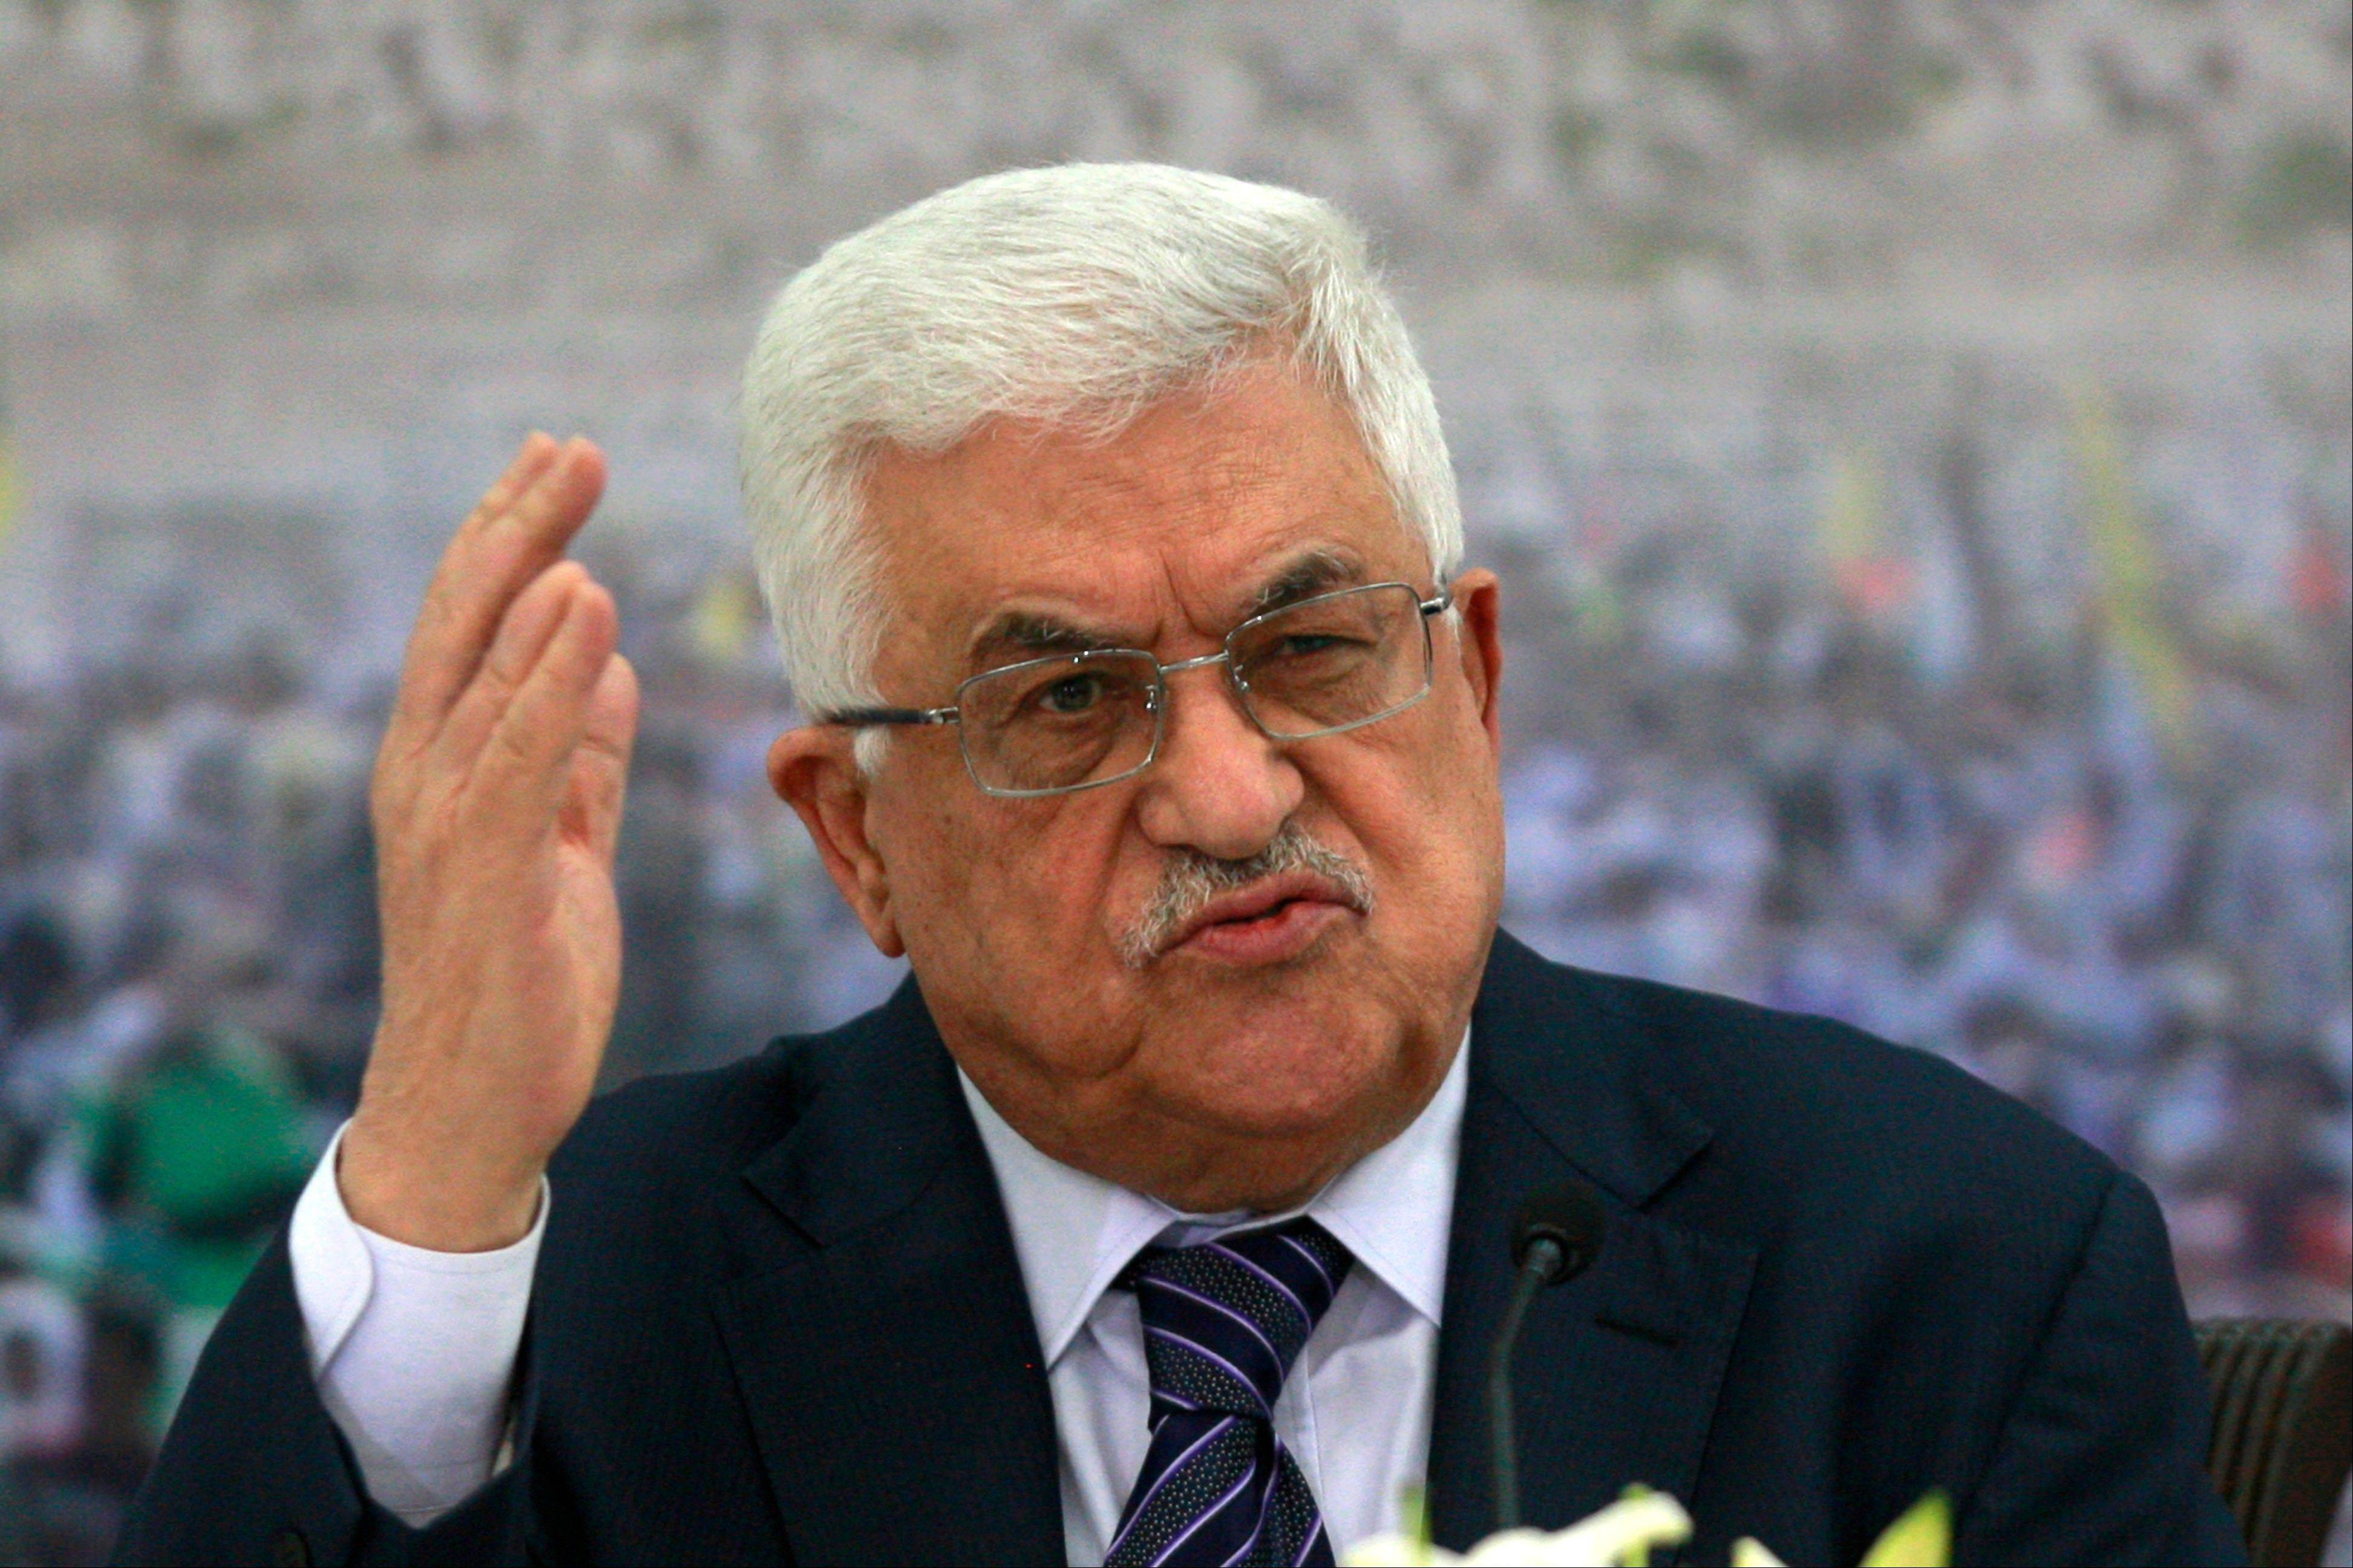 After bitter rival Hamas fought Israel to a draw in Gaza, Palestinian President Mahmoud Abbas has no choice but to ignore strong U.S. objections and seek U.N. recognition of a state of Palestine next week. But even such recognition may not be enough for the Western-backed backed proponent of a peace deal with Israel to stay credible as a leader and counter the soaring popularity of Gaza�s Hamas militants.